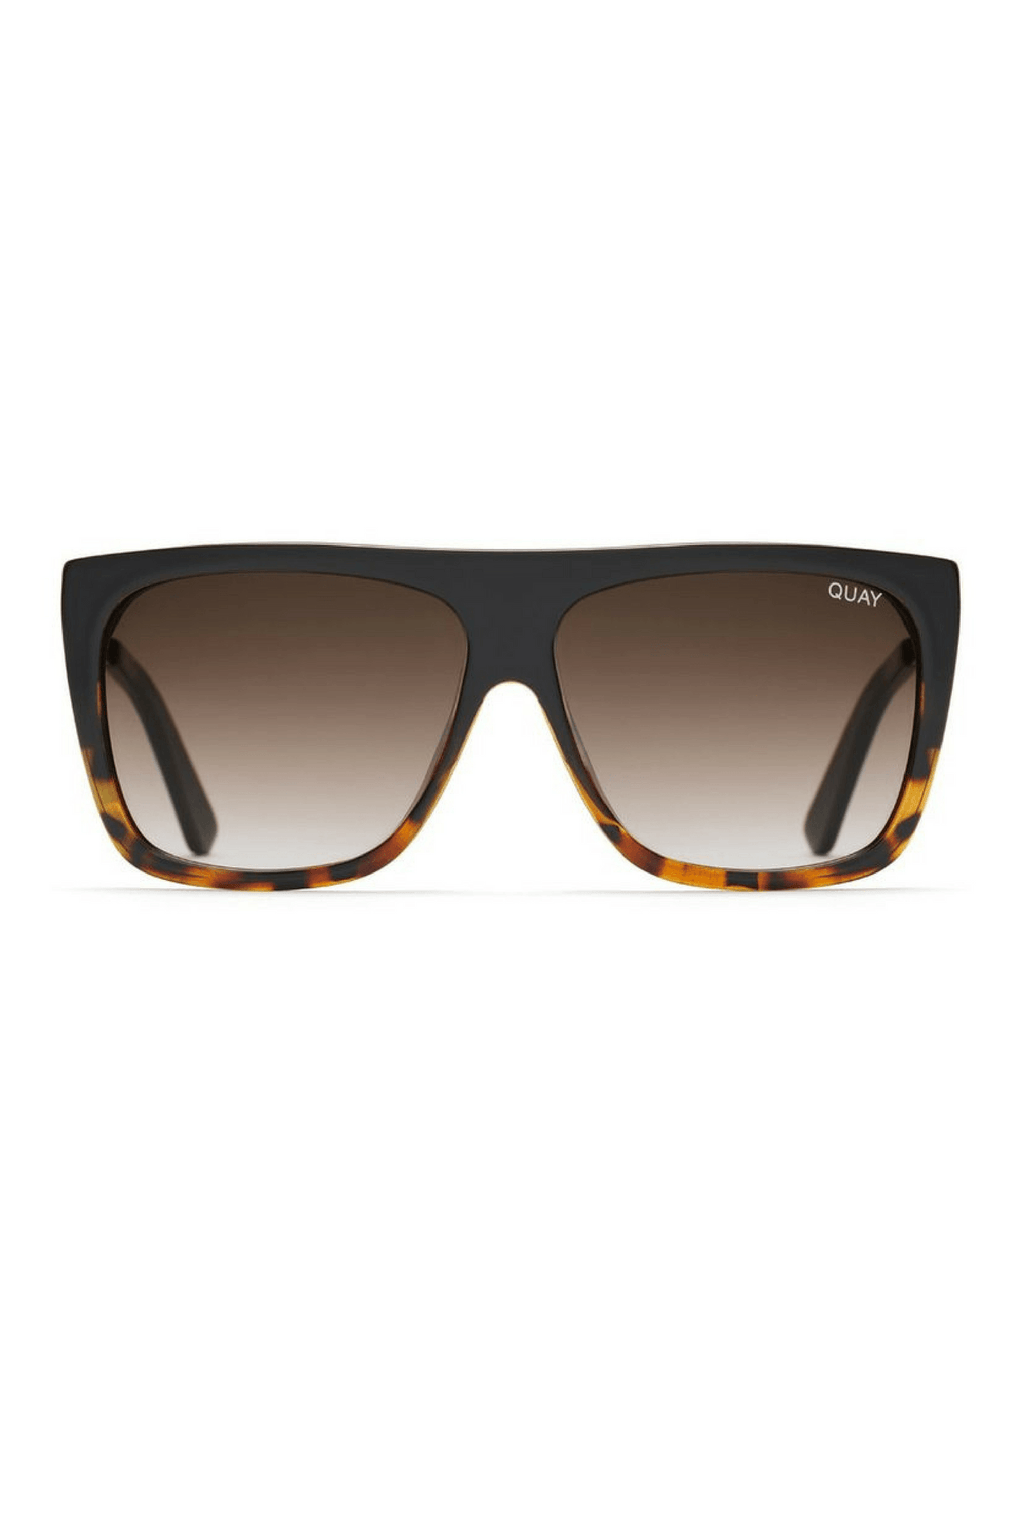 Quay x Desi OTL II Sunglasses in Tort/Brown - QUAY AUSTRALIA